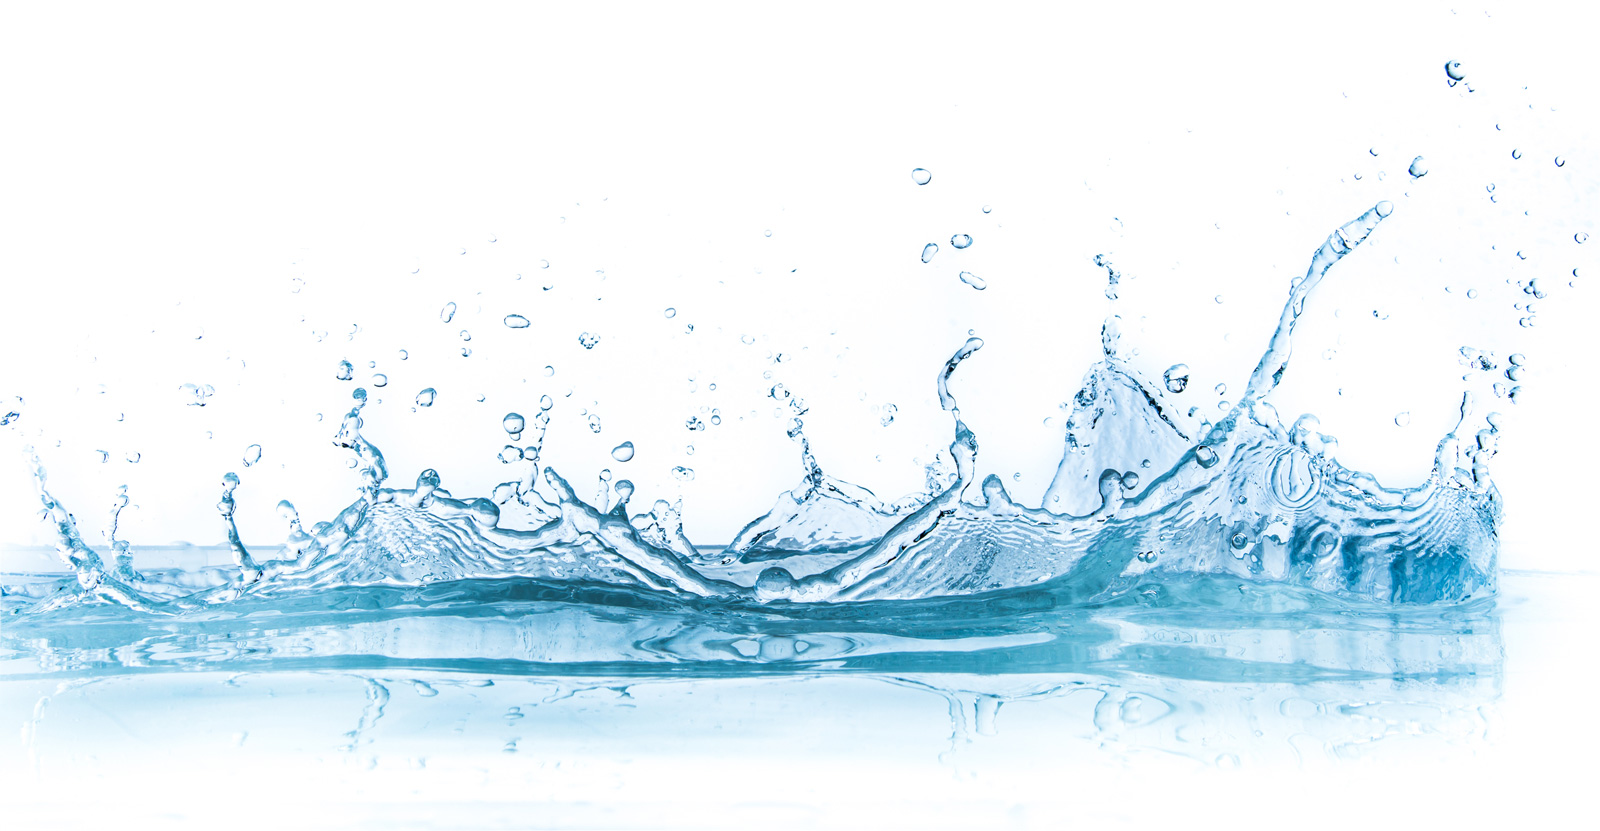 Photography Project: High Speed Water Drops - Water Drop Splash PNG